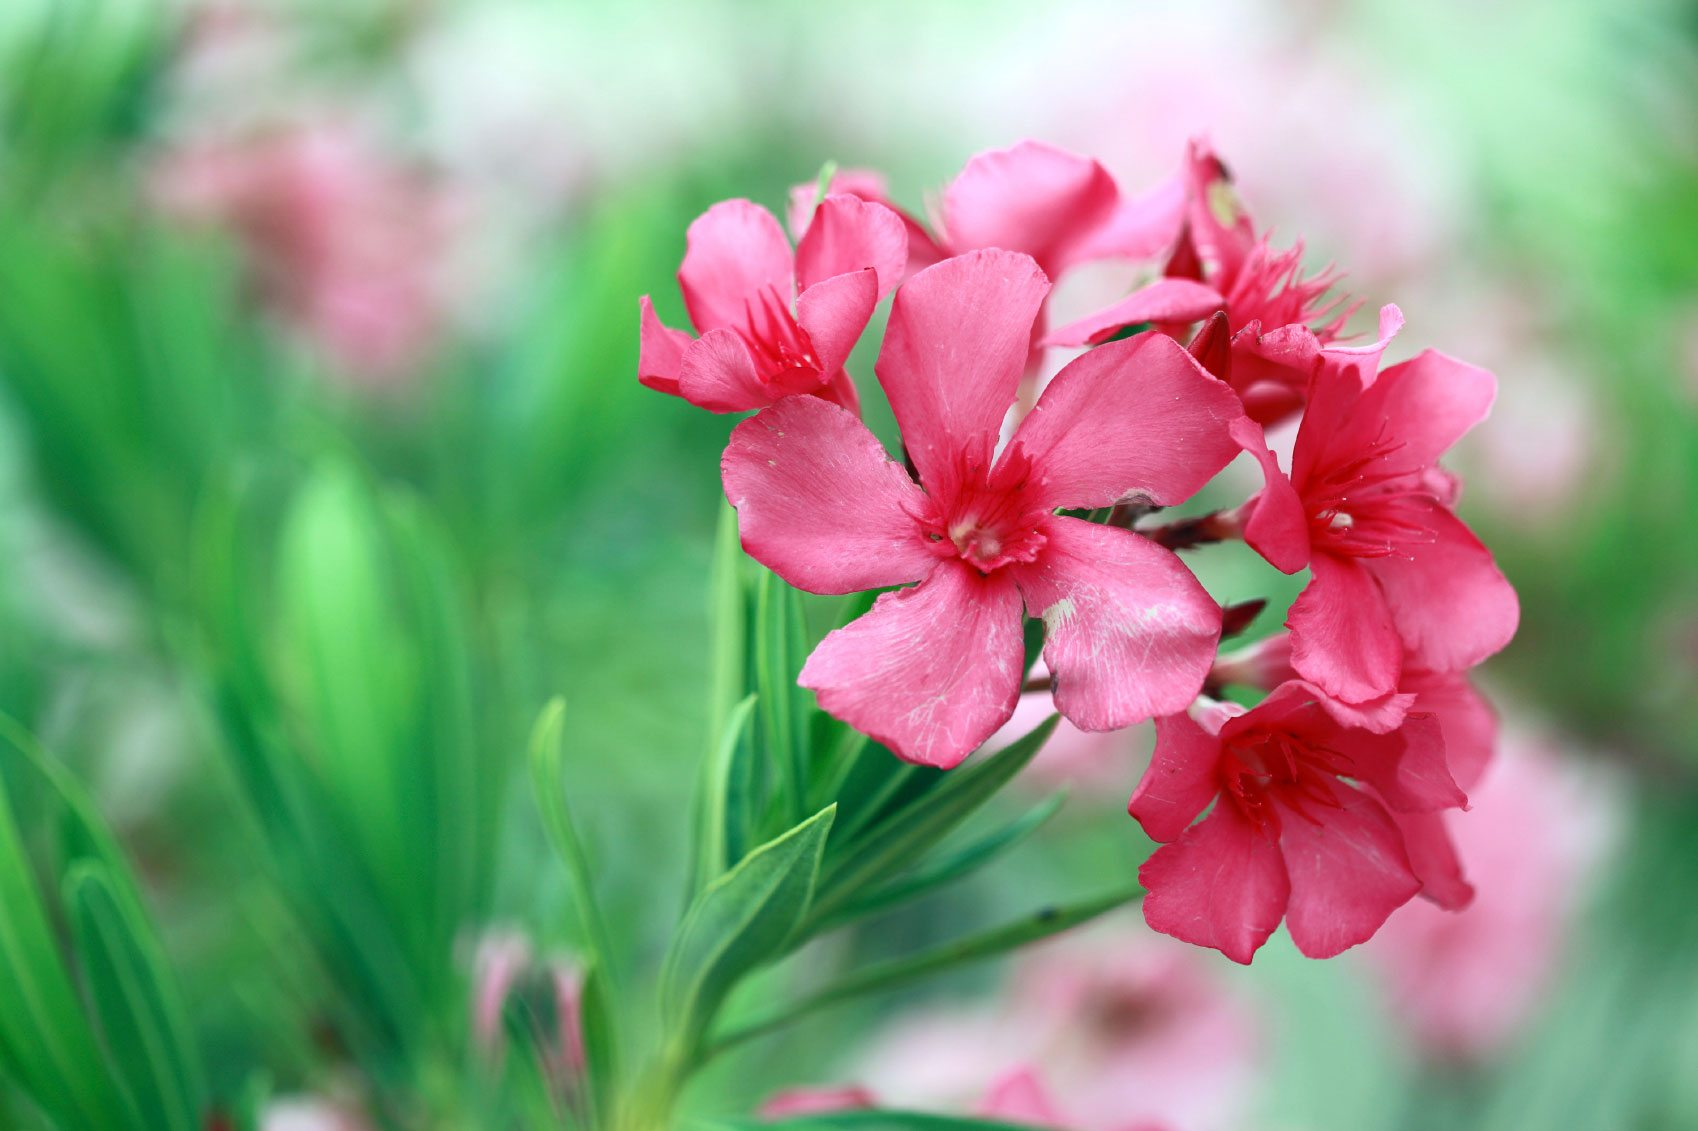 Oleander Plant Info How To Care For Oleander Shrubs 'not until you give me an answer,' said graham, beginning to get annoyed. how to care for oleander shrubs